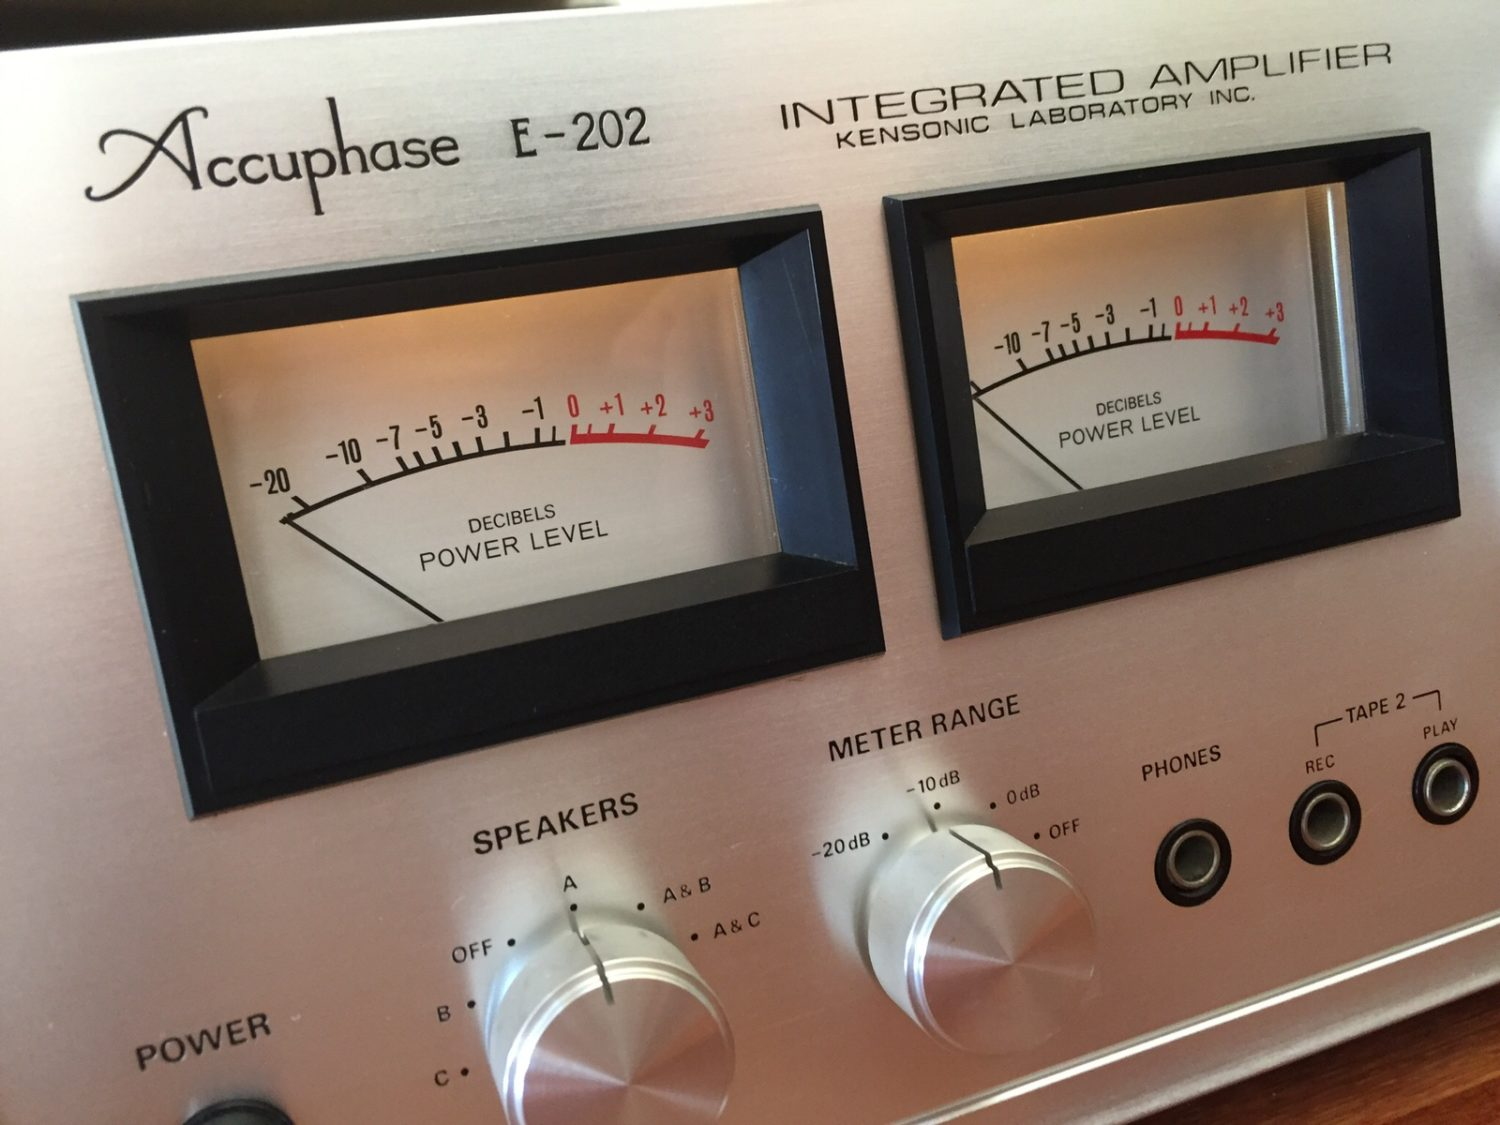 Accuphase E-202 Integrated Amplifier Restoration